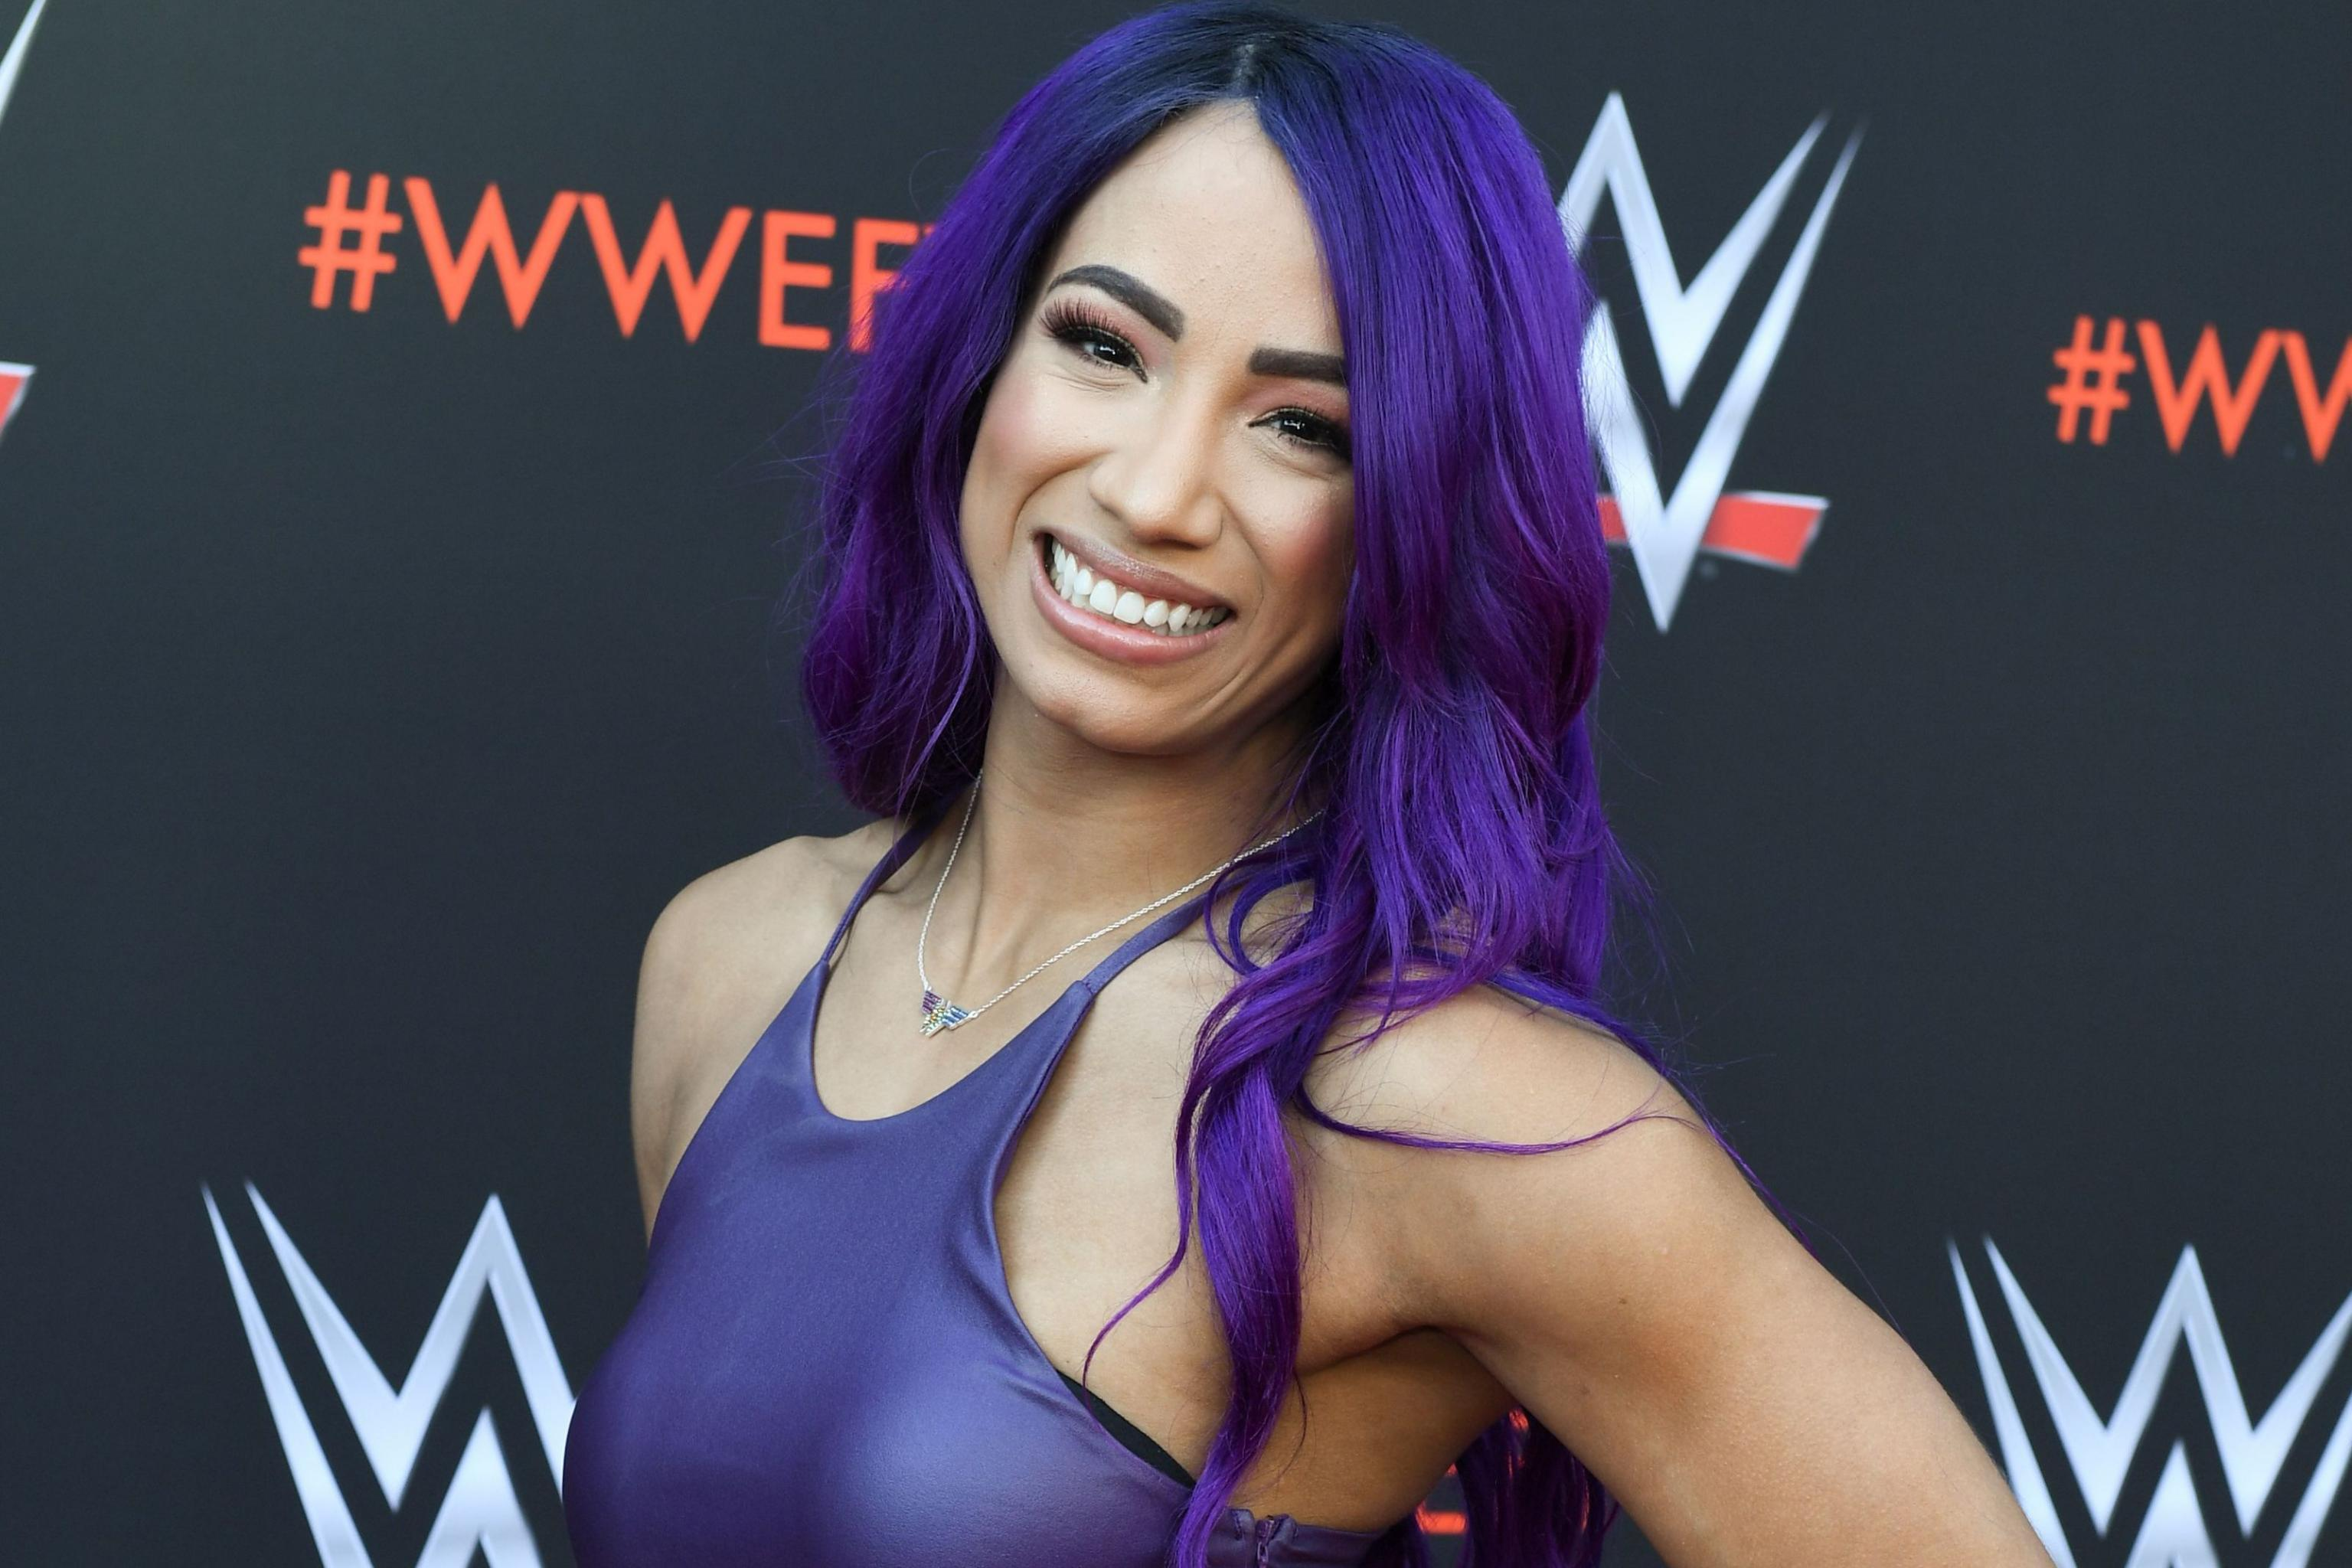 Watch Blue Haired Sasha Banks Attack Natalya Becky Lynch In Epic Wwe Raw Return Bleacher Report Latest News Videos And Highlights